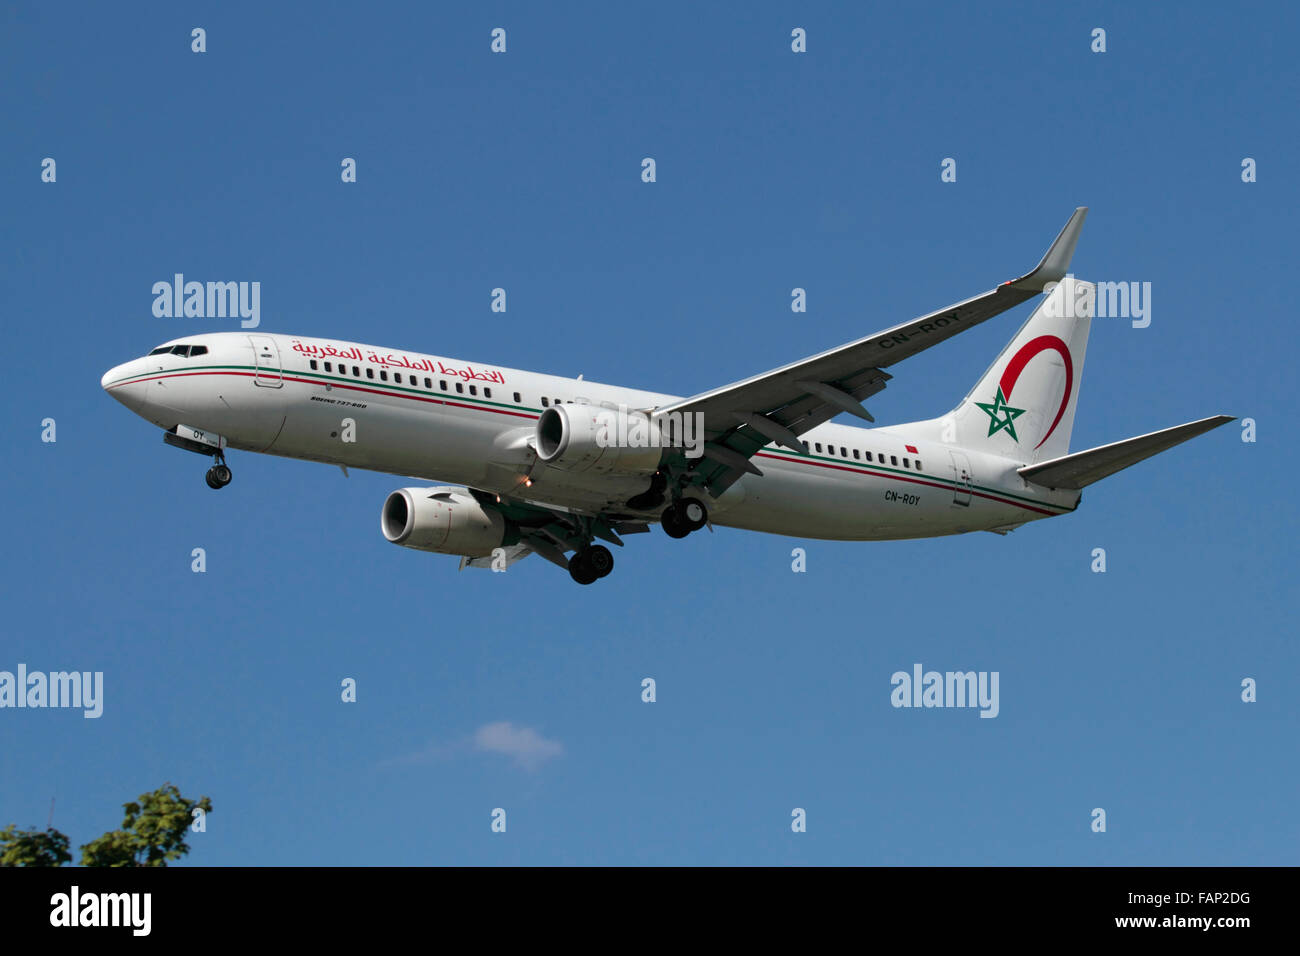 Royal Air Maroc Boeing 737-800 on approach to London Heathrow - Stock Image